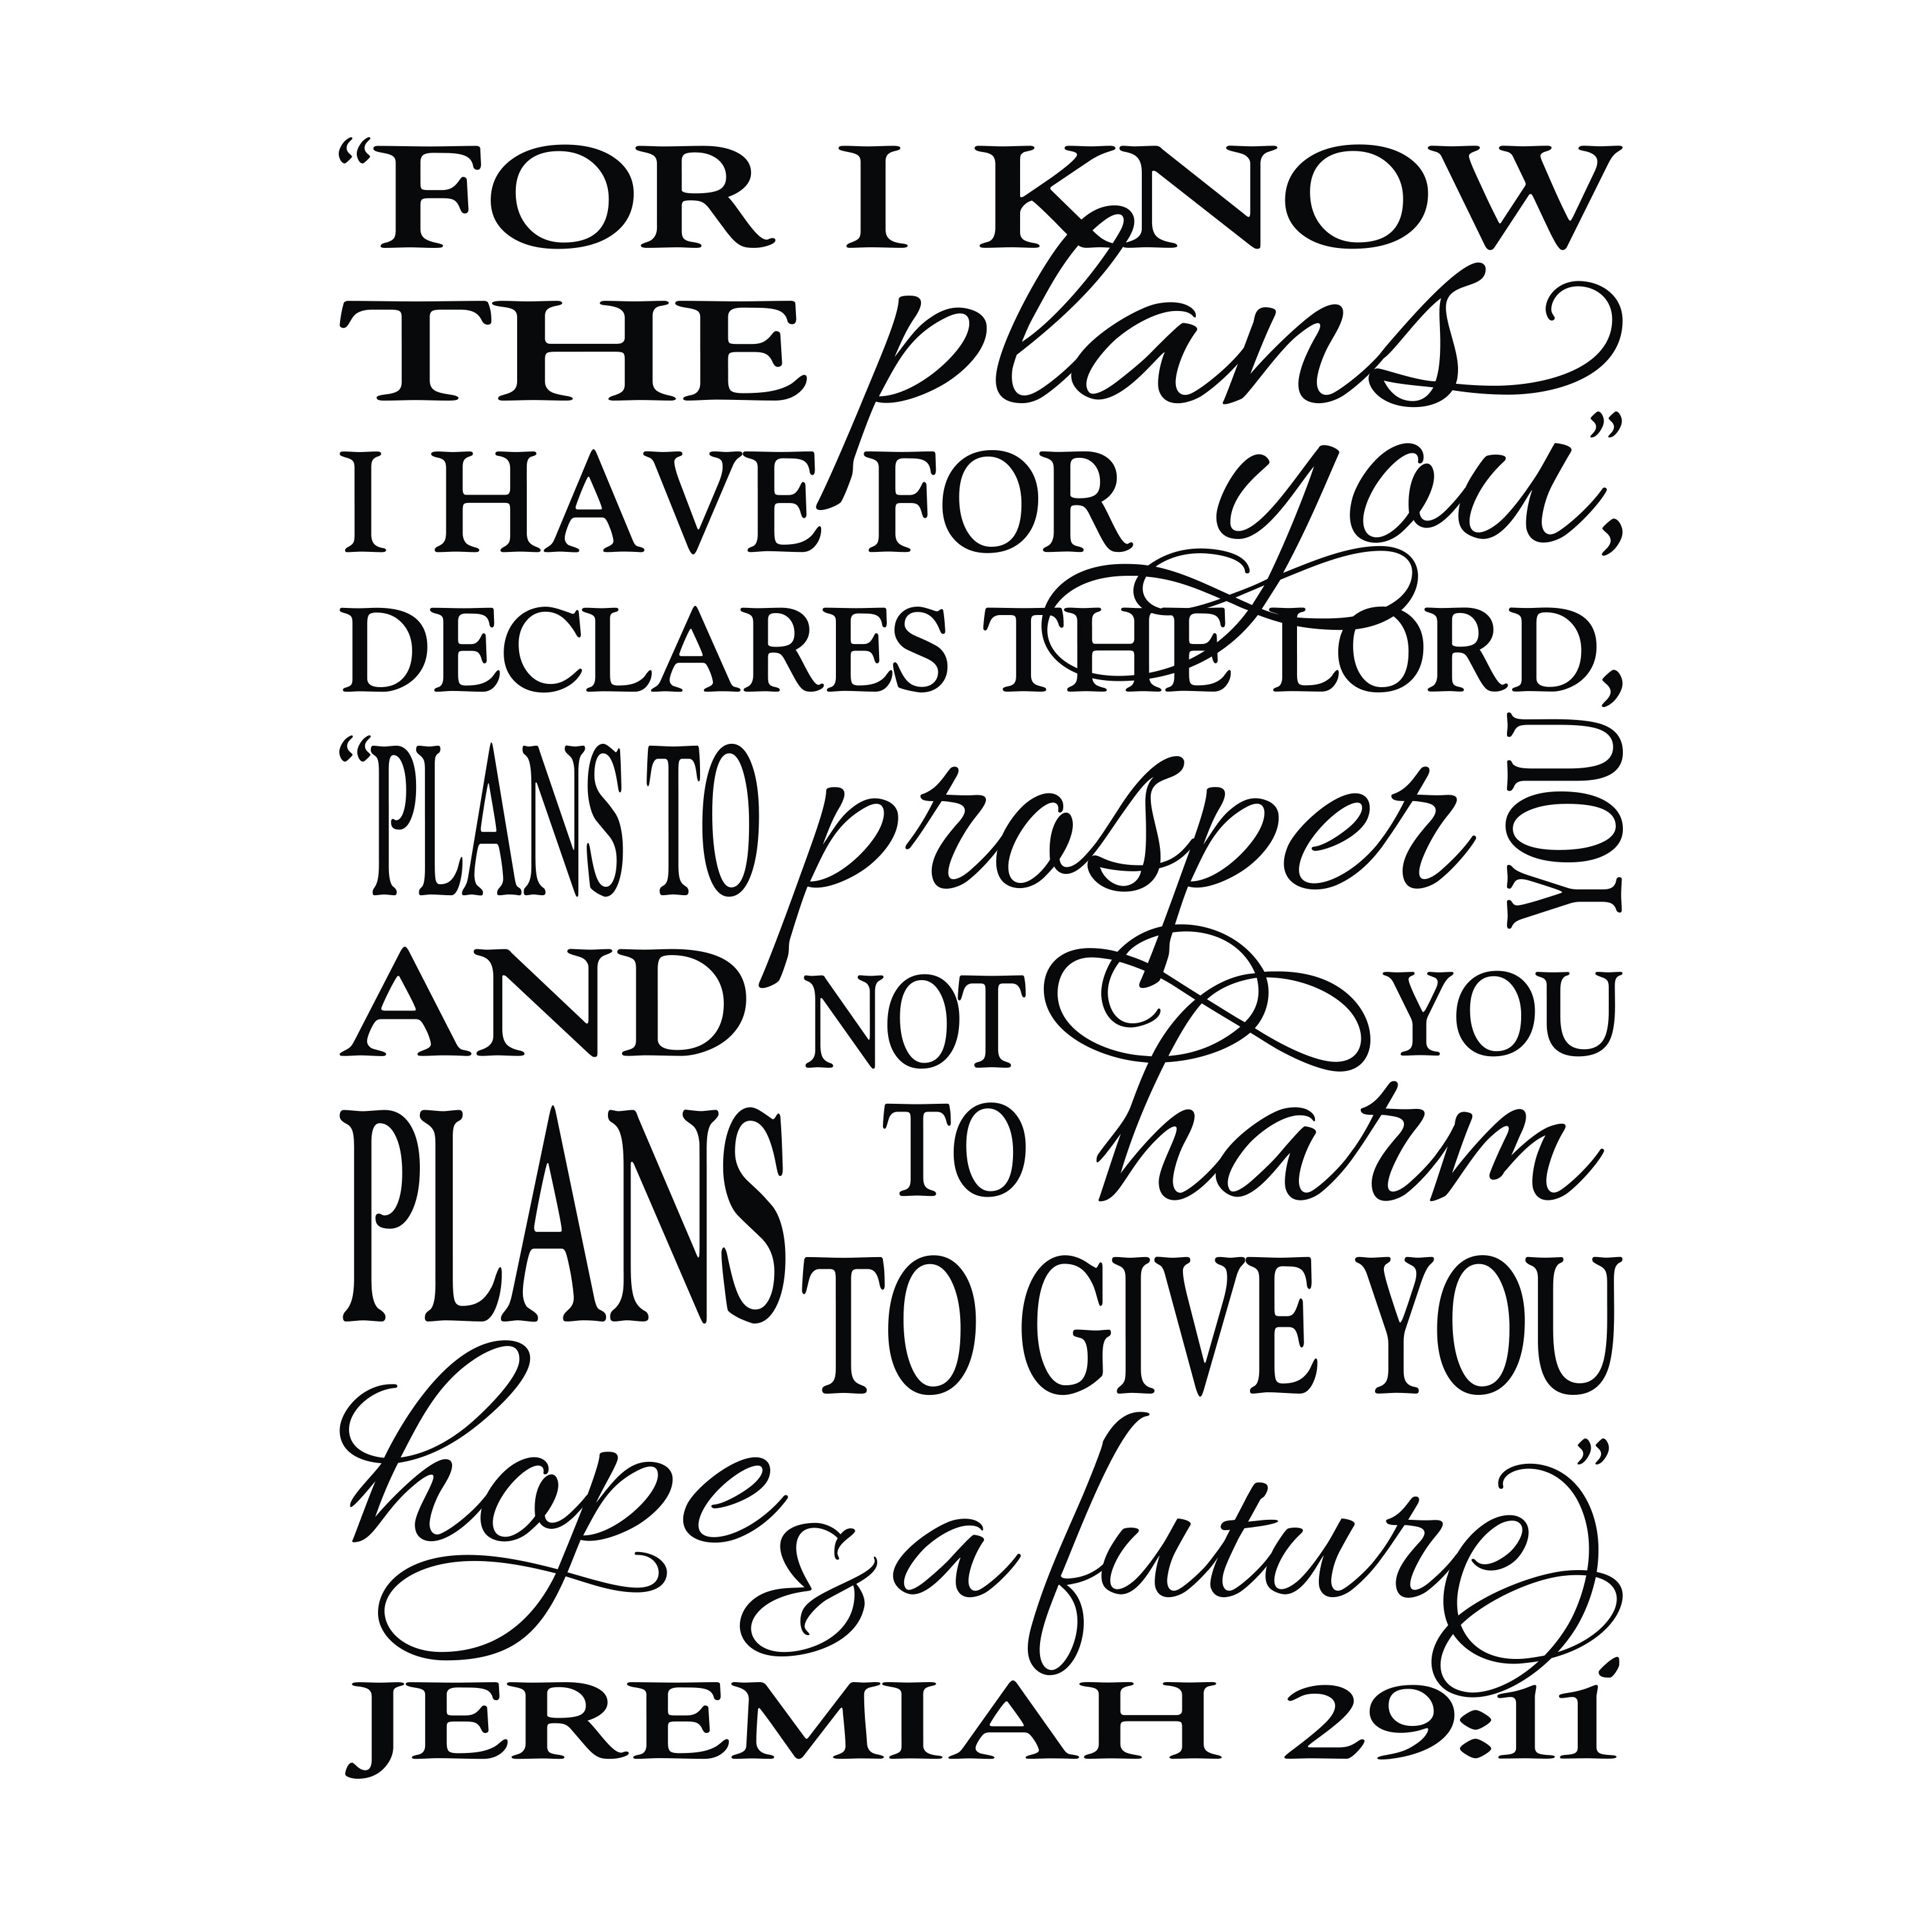 Jeremiah 29v11 Vinyl Wall Decal 9 For I Know The Plans I Have For You